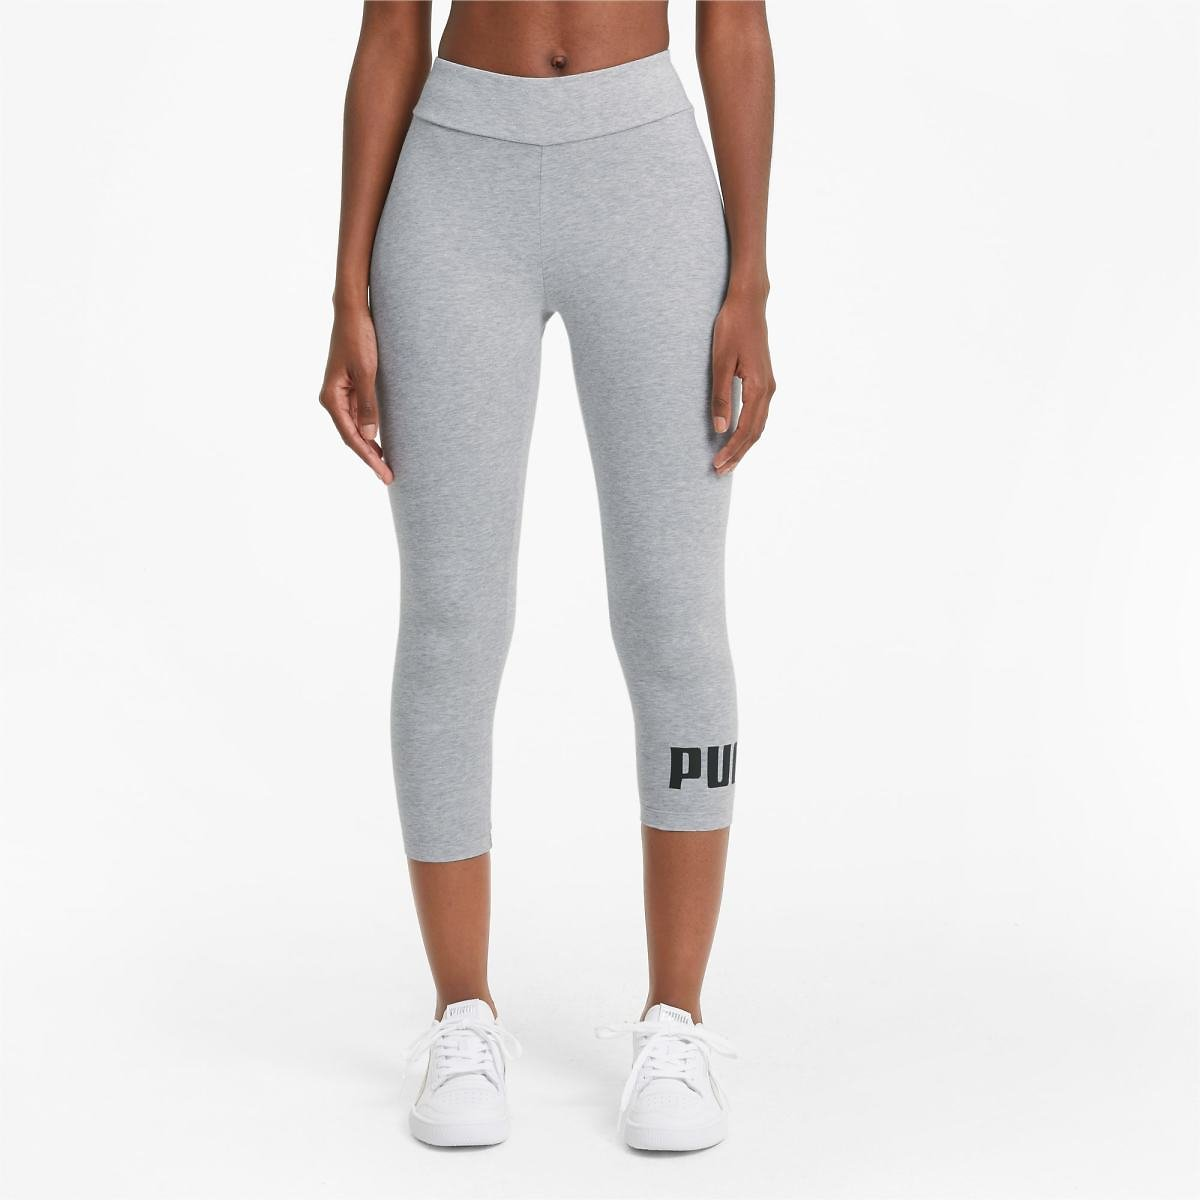 Essentials Women's 3/4 Logo Leggings